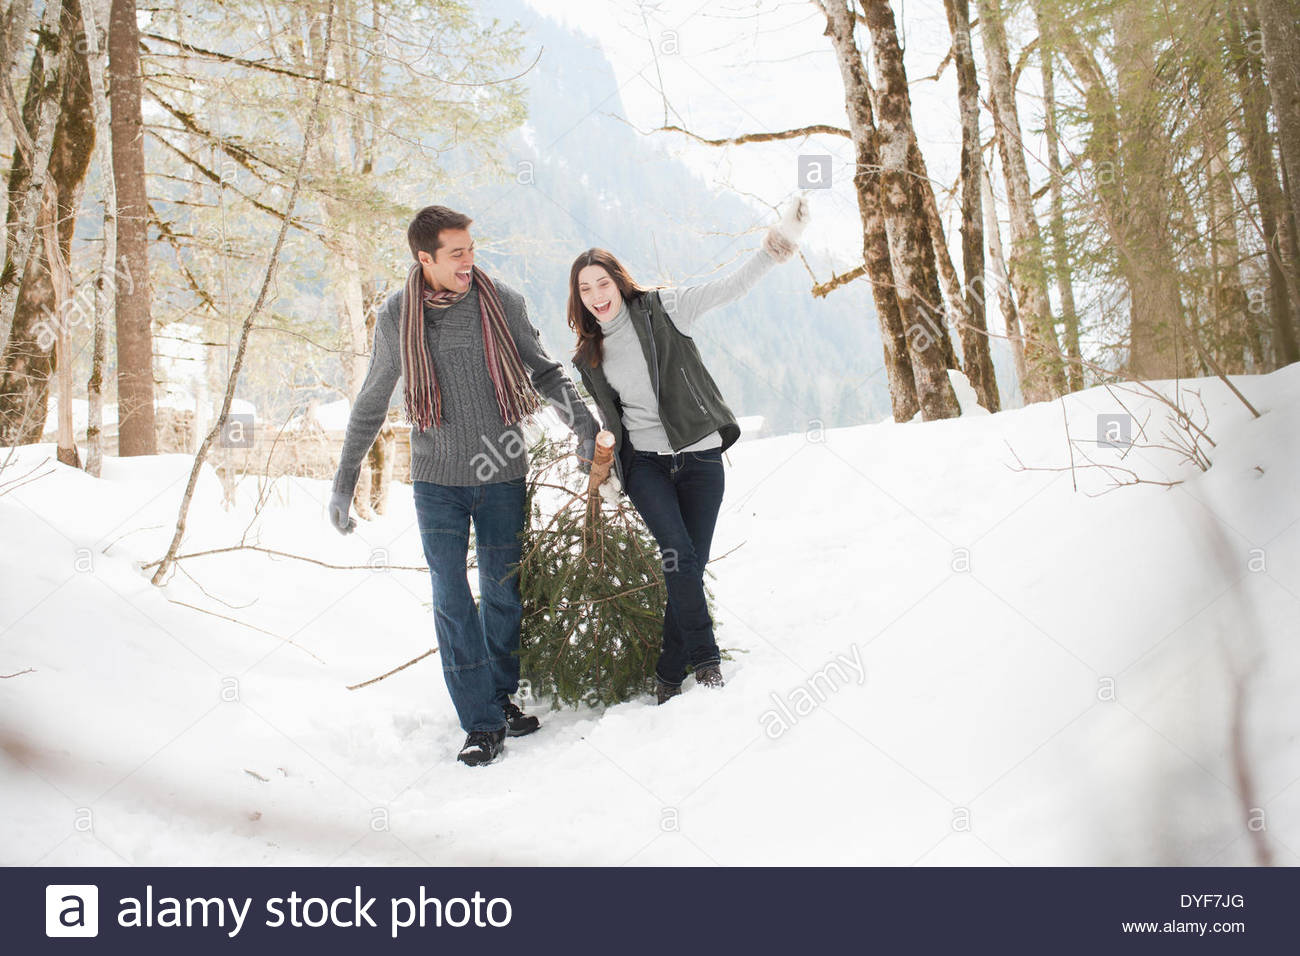 Couple pulling Christmas Tree in woods Photo Stock